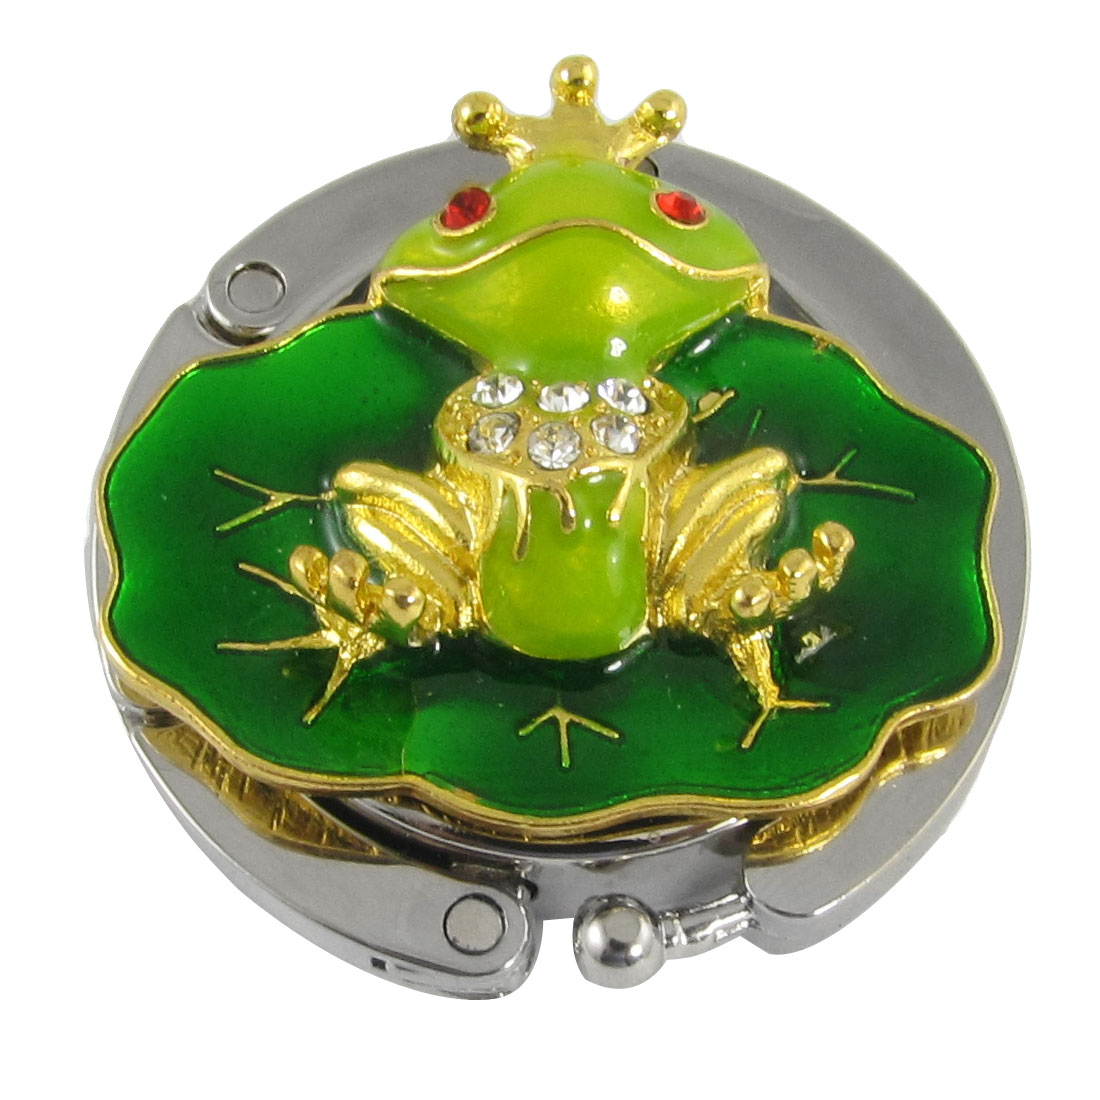 Cute Gold Tone Green Frog Purse Bag Handbag Hanger Hook Holder